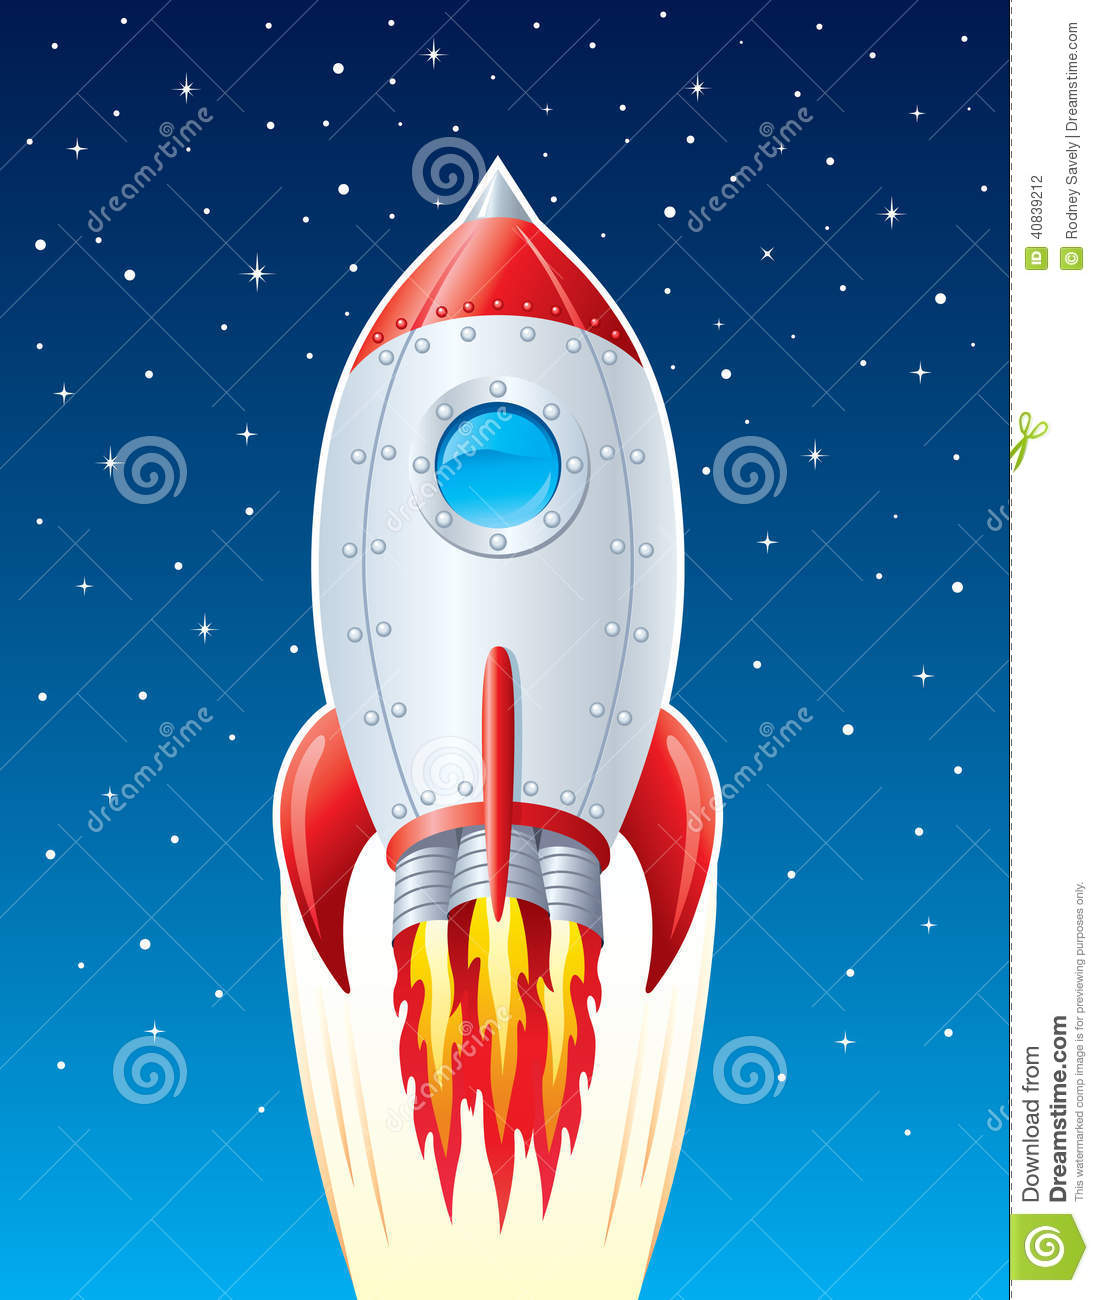 outer space with rocket ships - photo #41